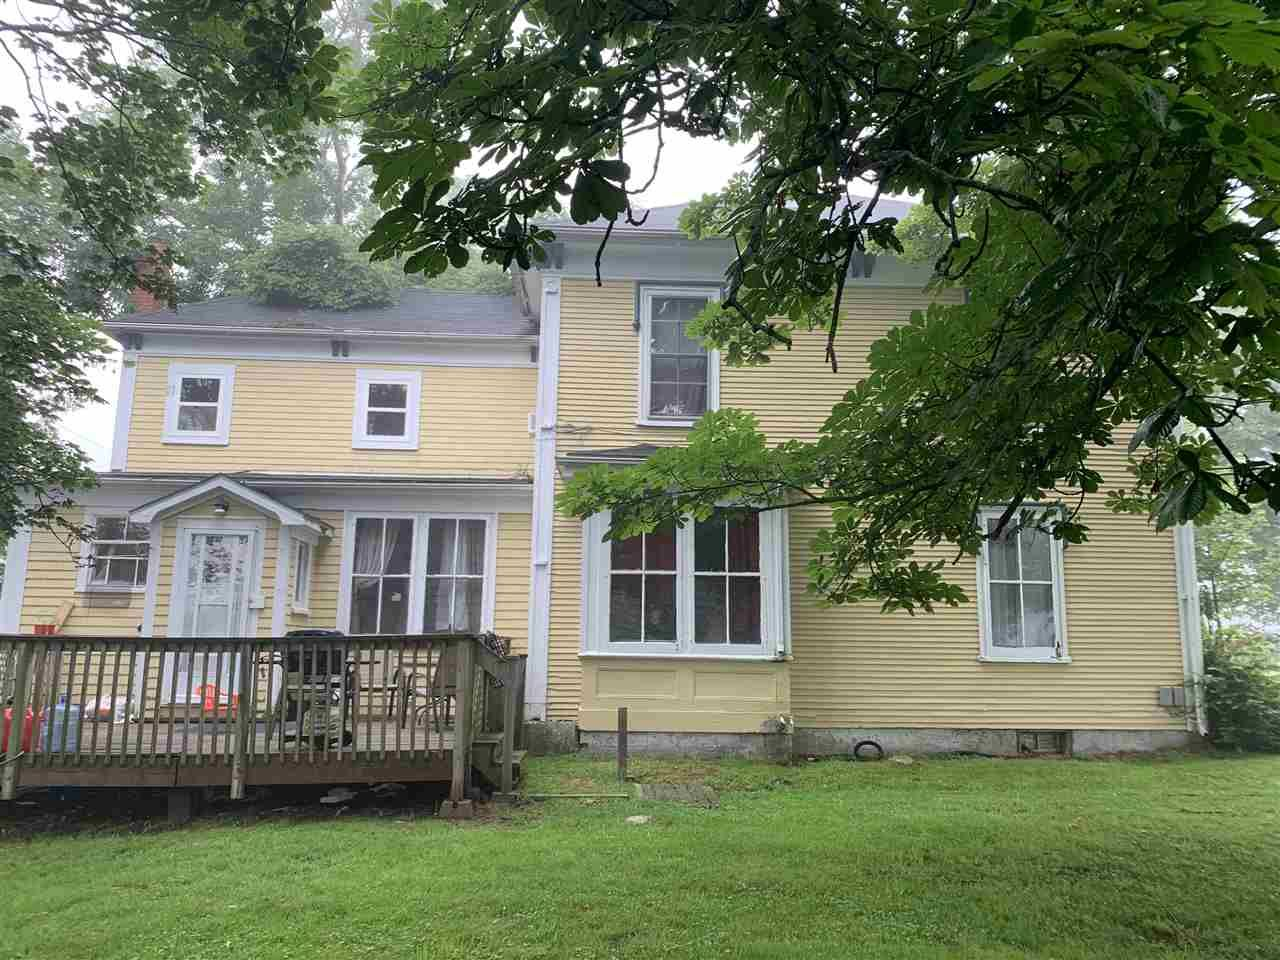 Main Photo: 8 Clements in Yarmouth: Town Central Multi-Family for sale : MLS®# 202015032